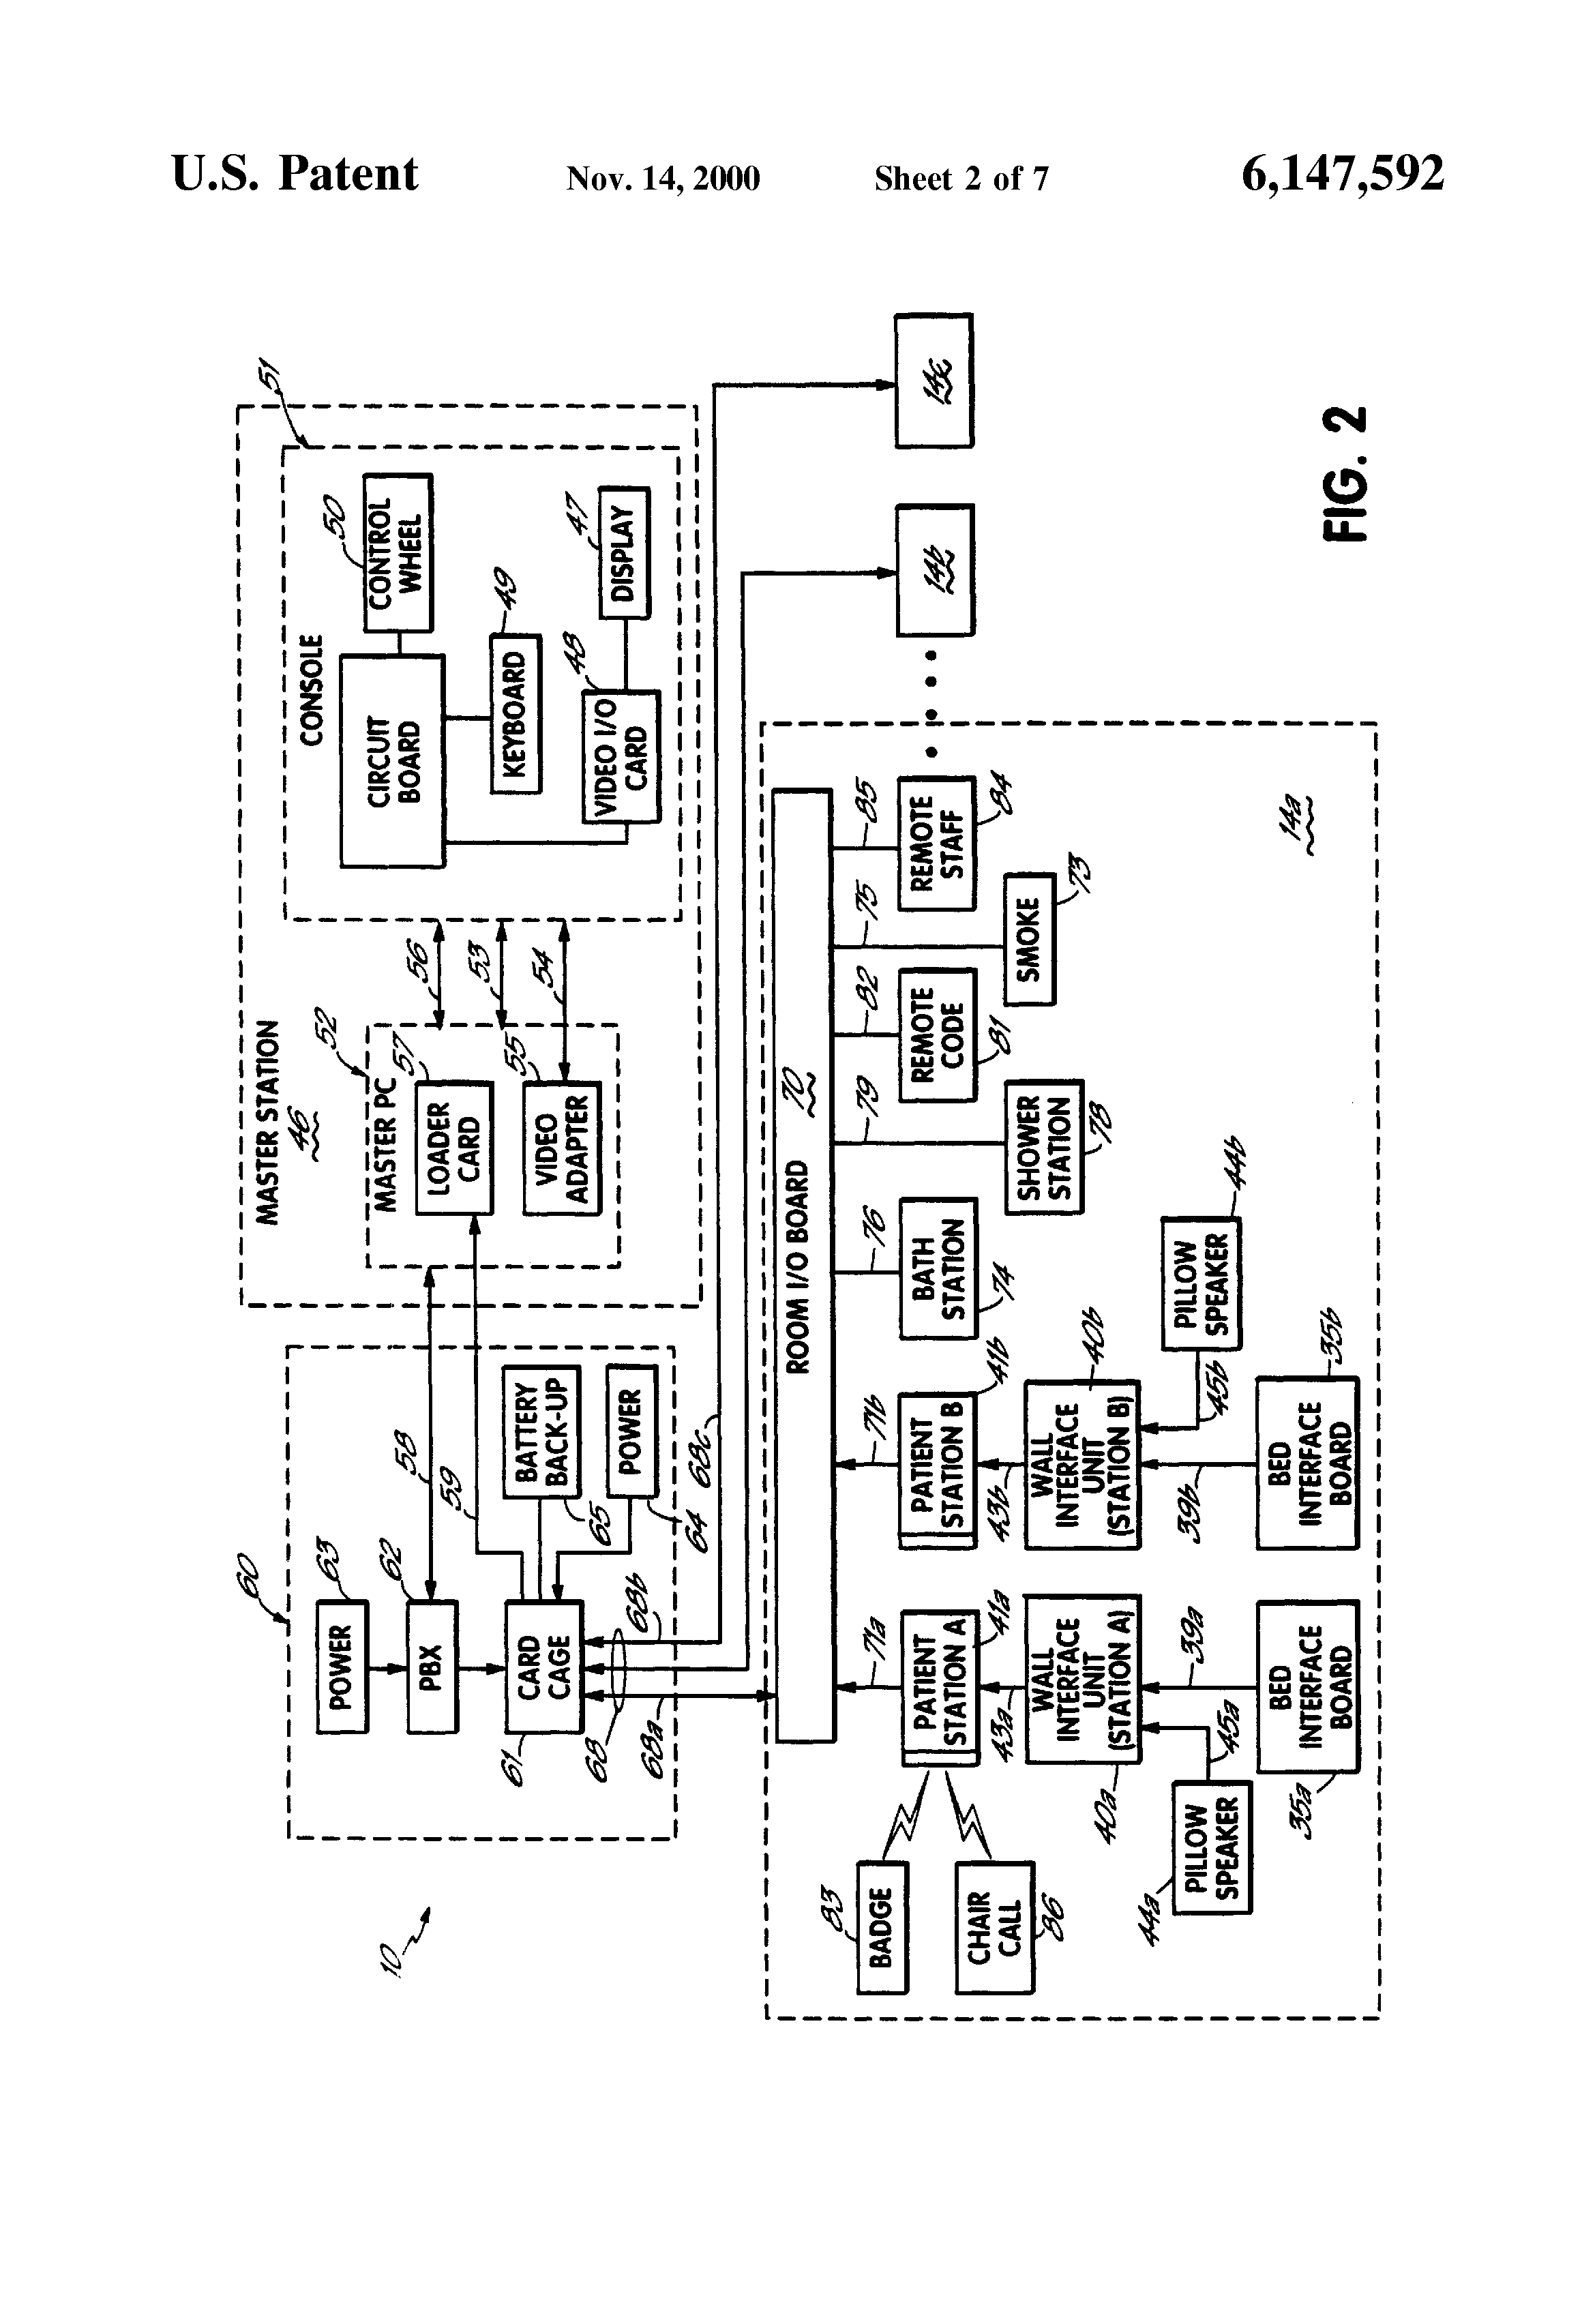 Patent Us6147592 Bed Status Information System For Hospital Beds Having Wireless Data On Wiring Box Wall Mount Tv Drawing